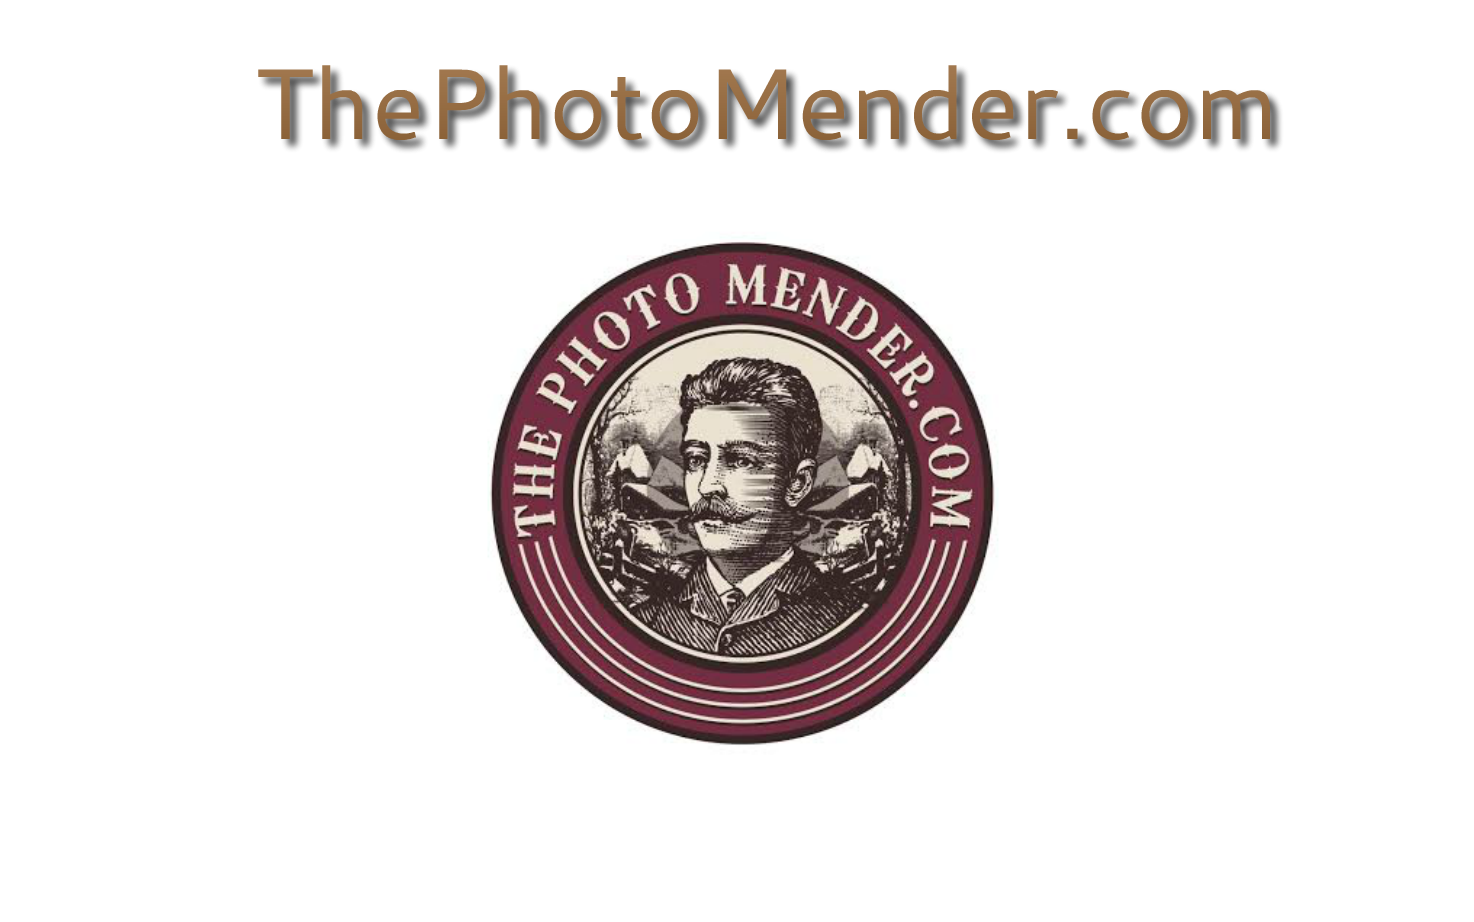 The Photo Mender